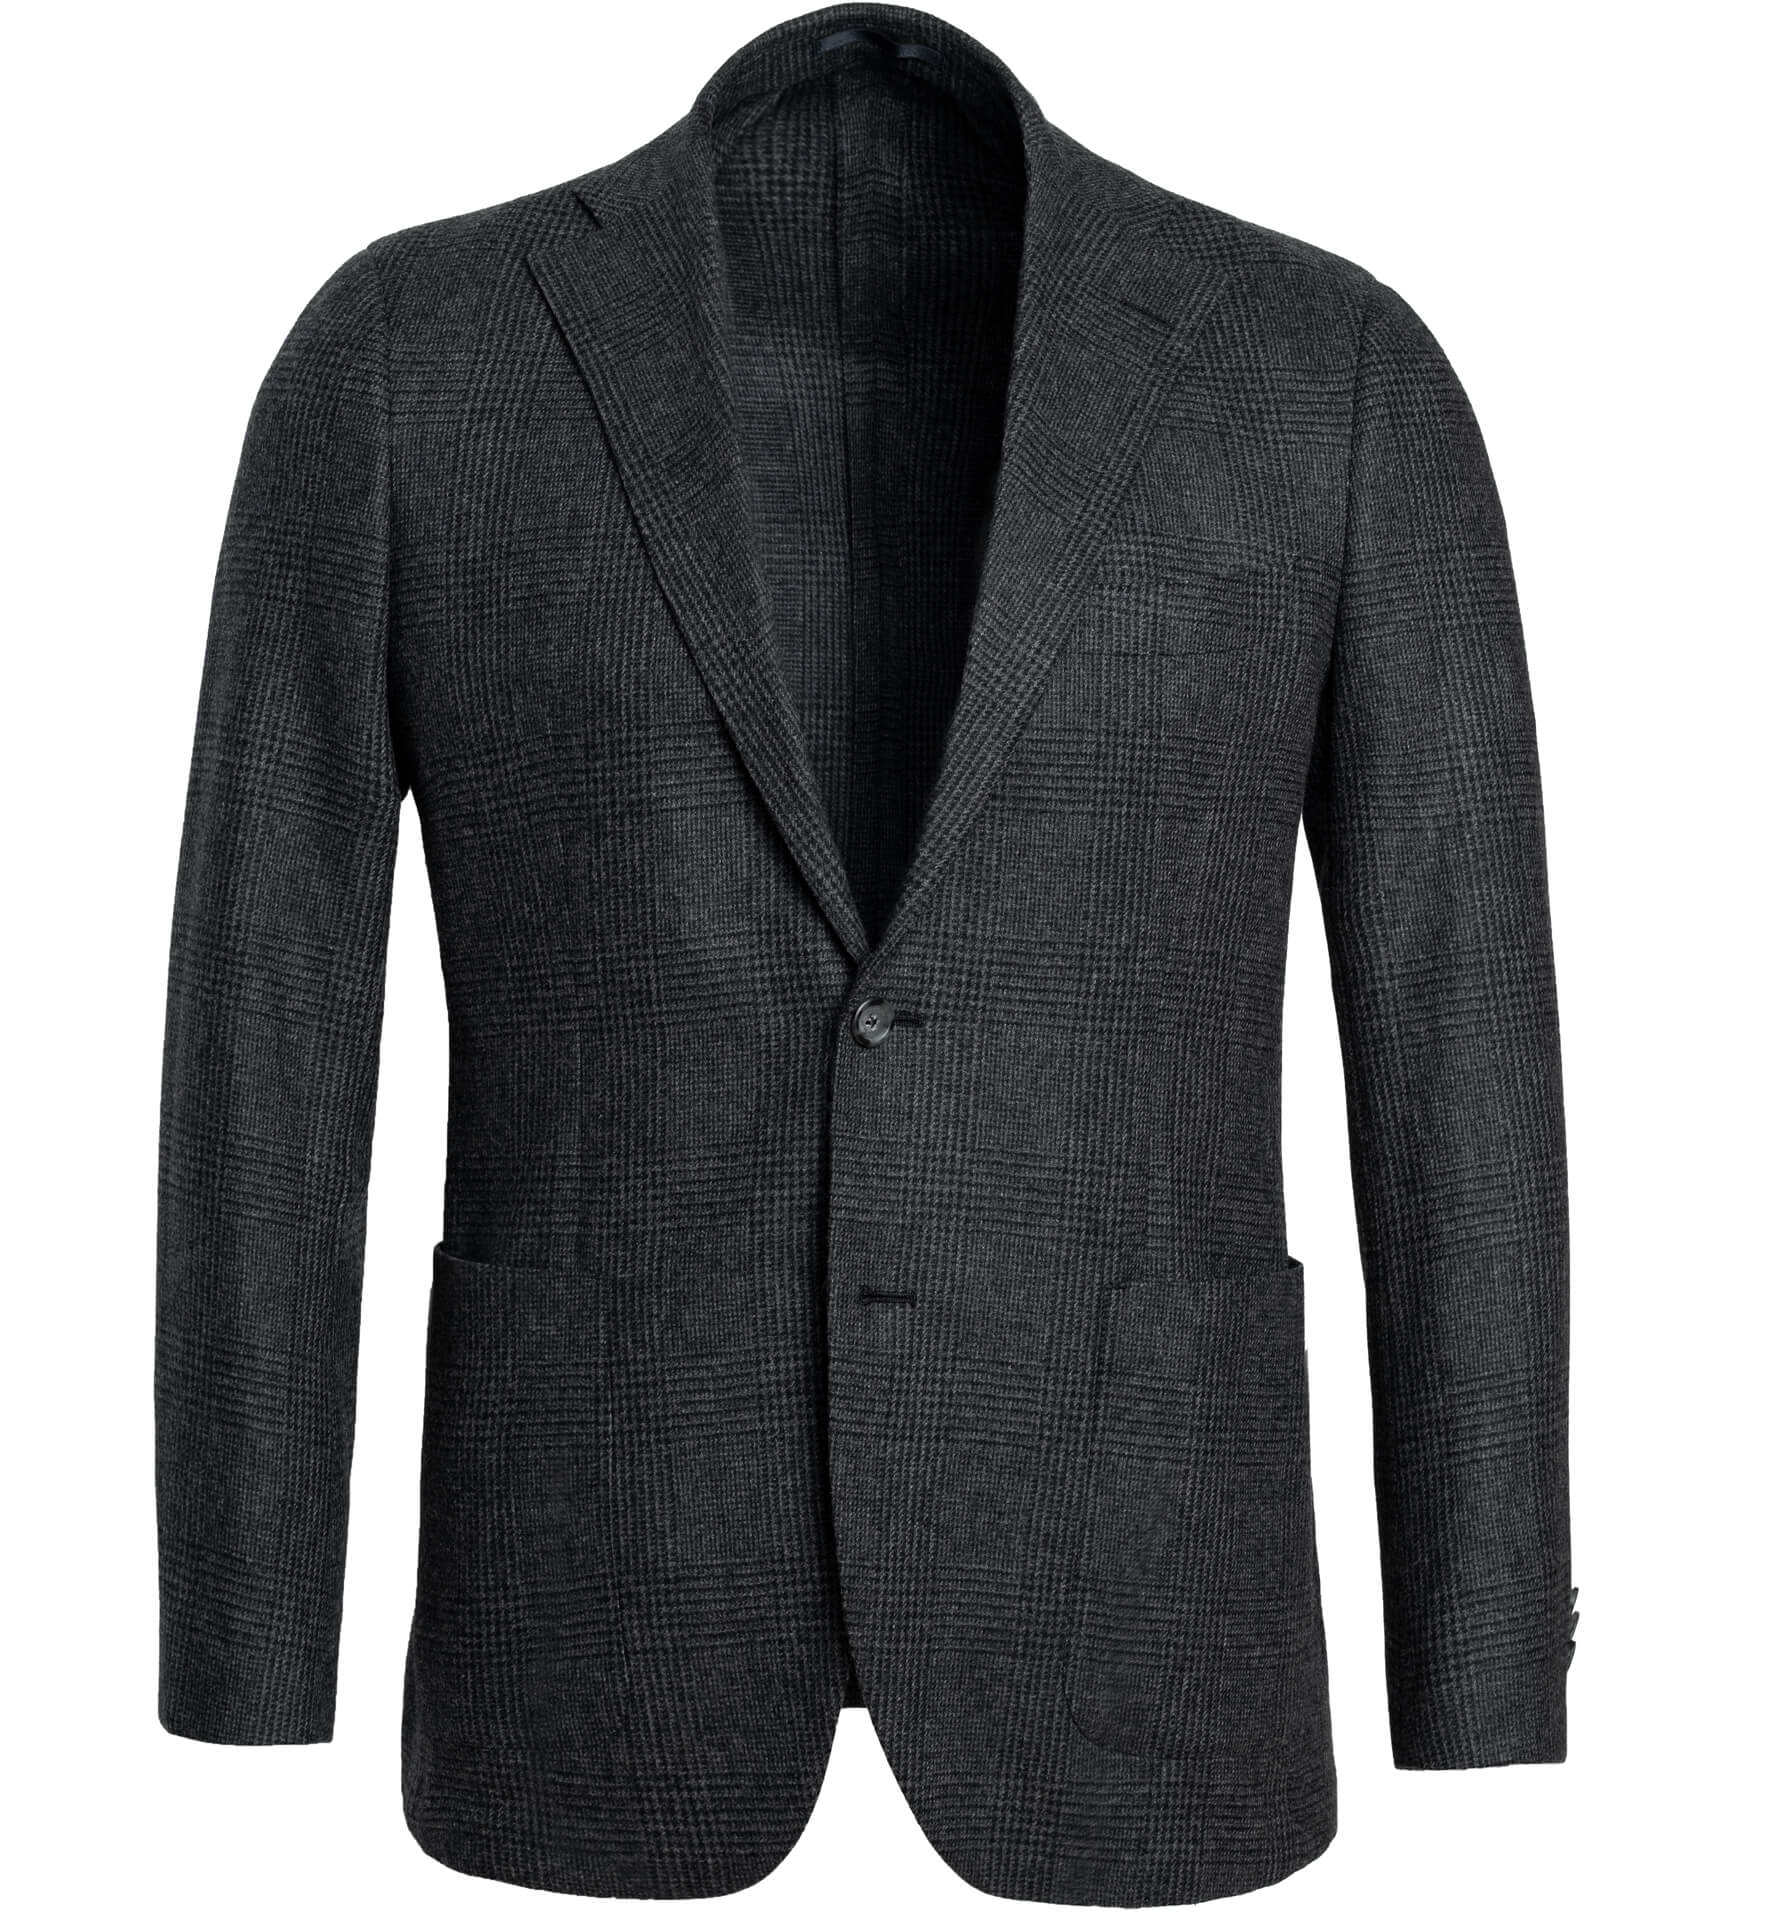 Zoom Image of Bedford Grey Glen Plaid Wool and Cashmere Jacket